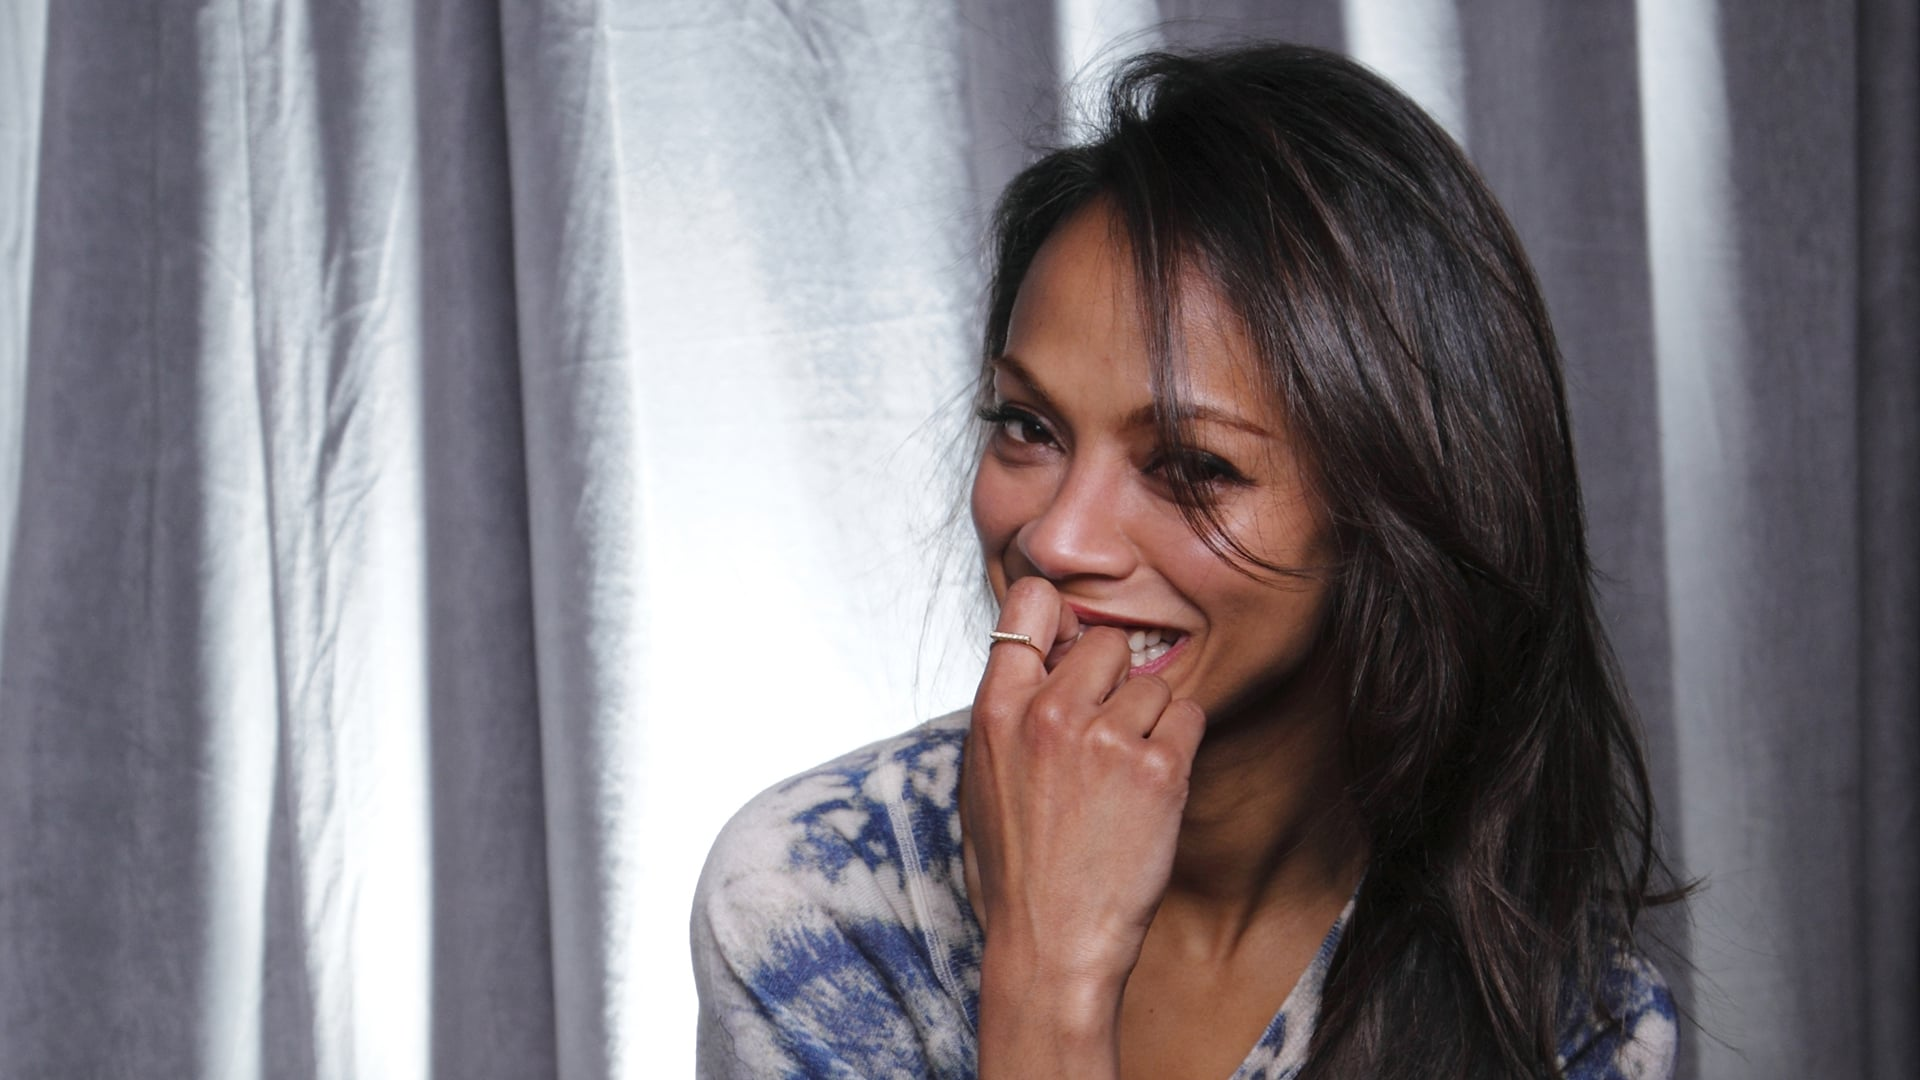 Image of Zoe Saldana for iPhone